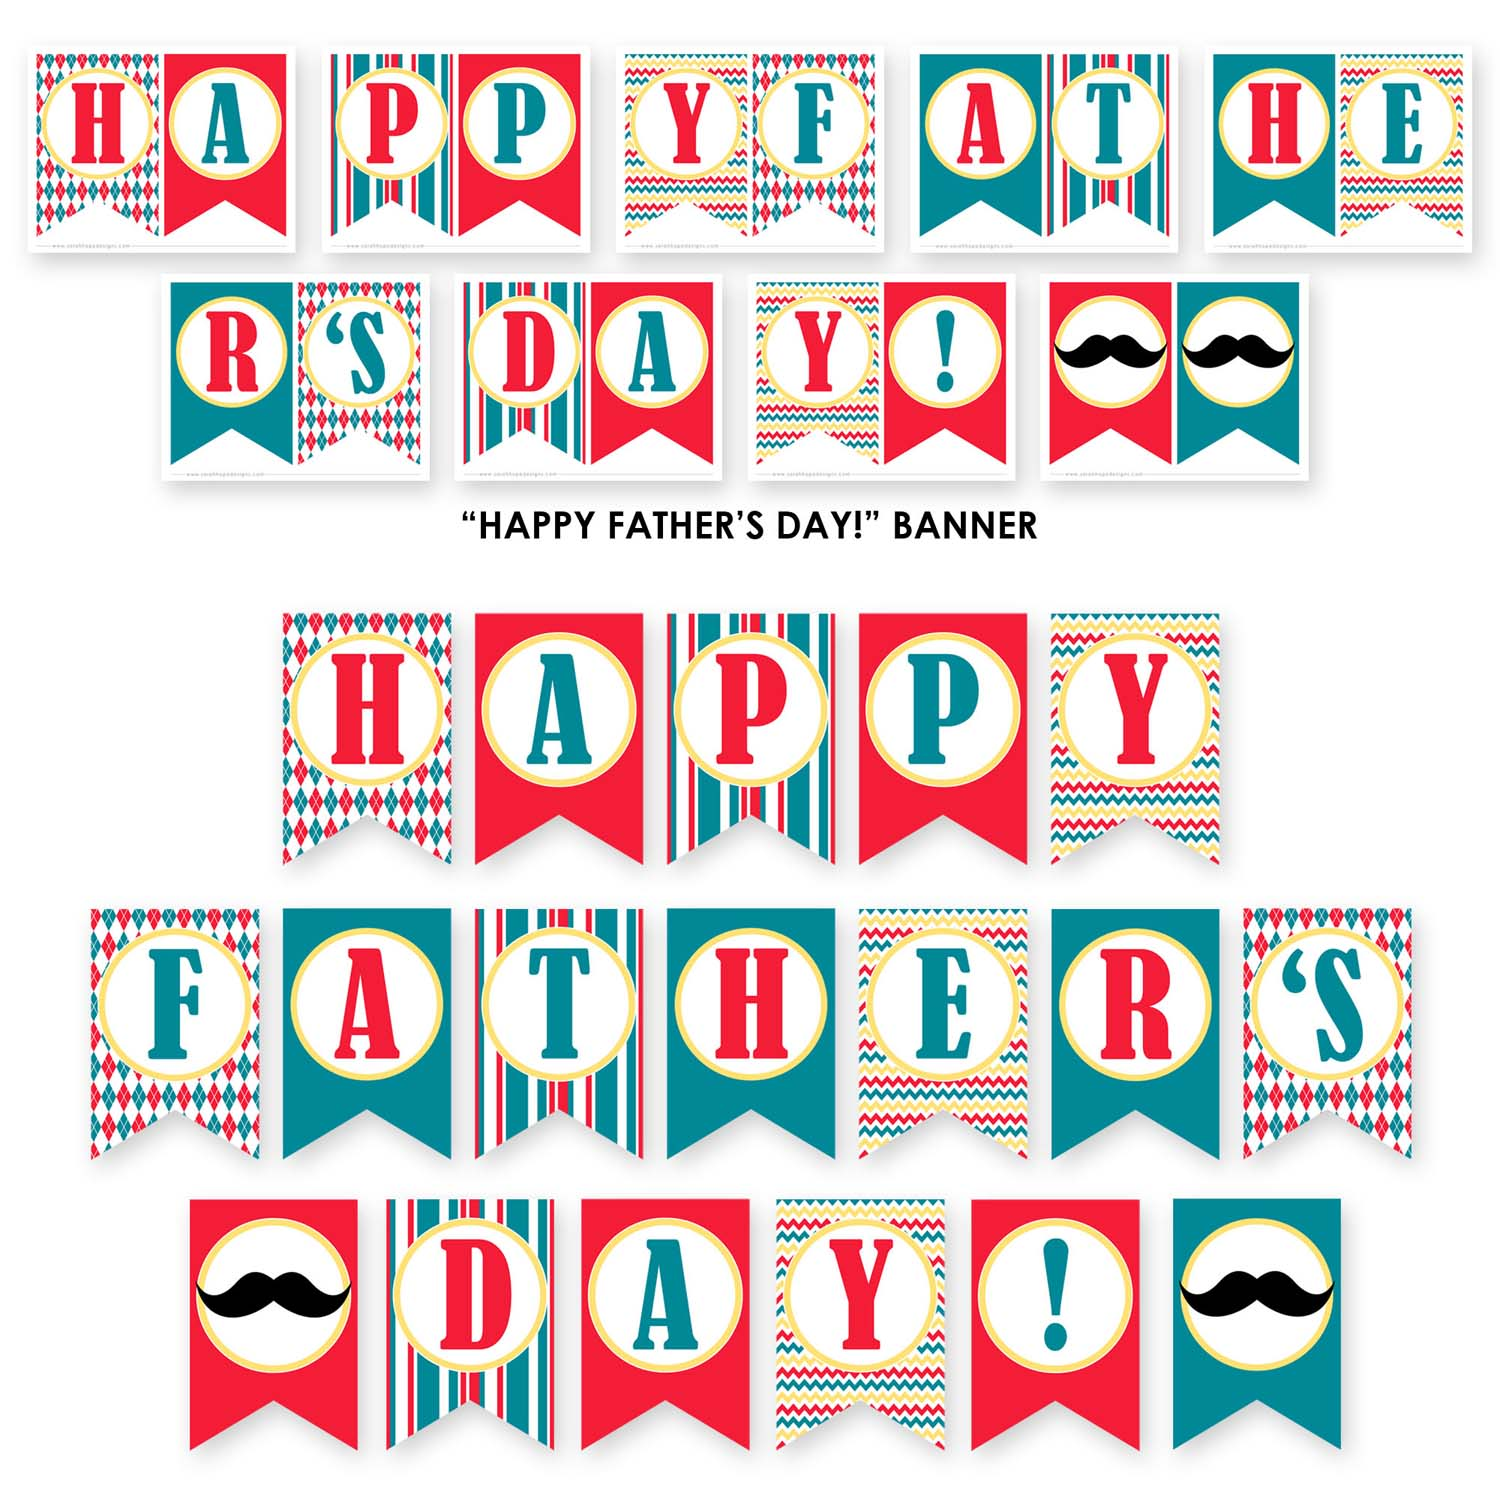 Astounding image with regard to happy father's day banner printable